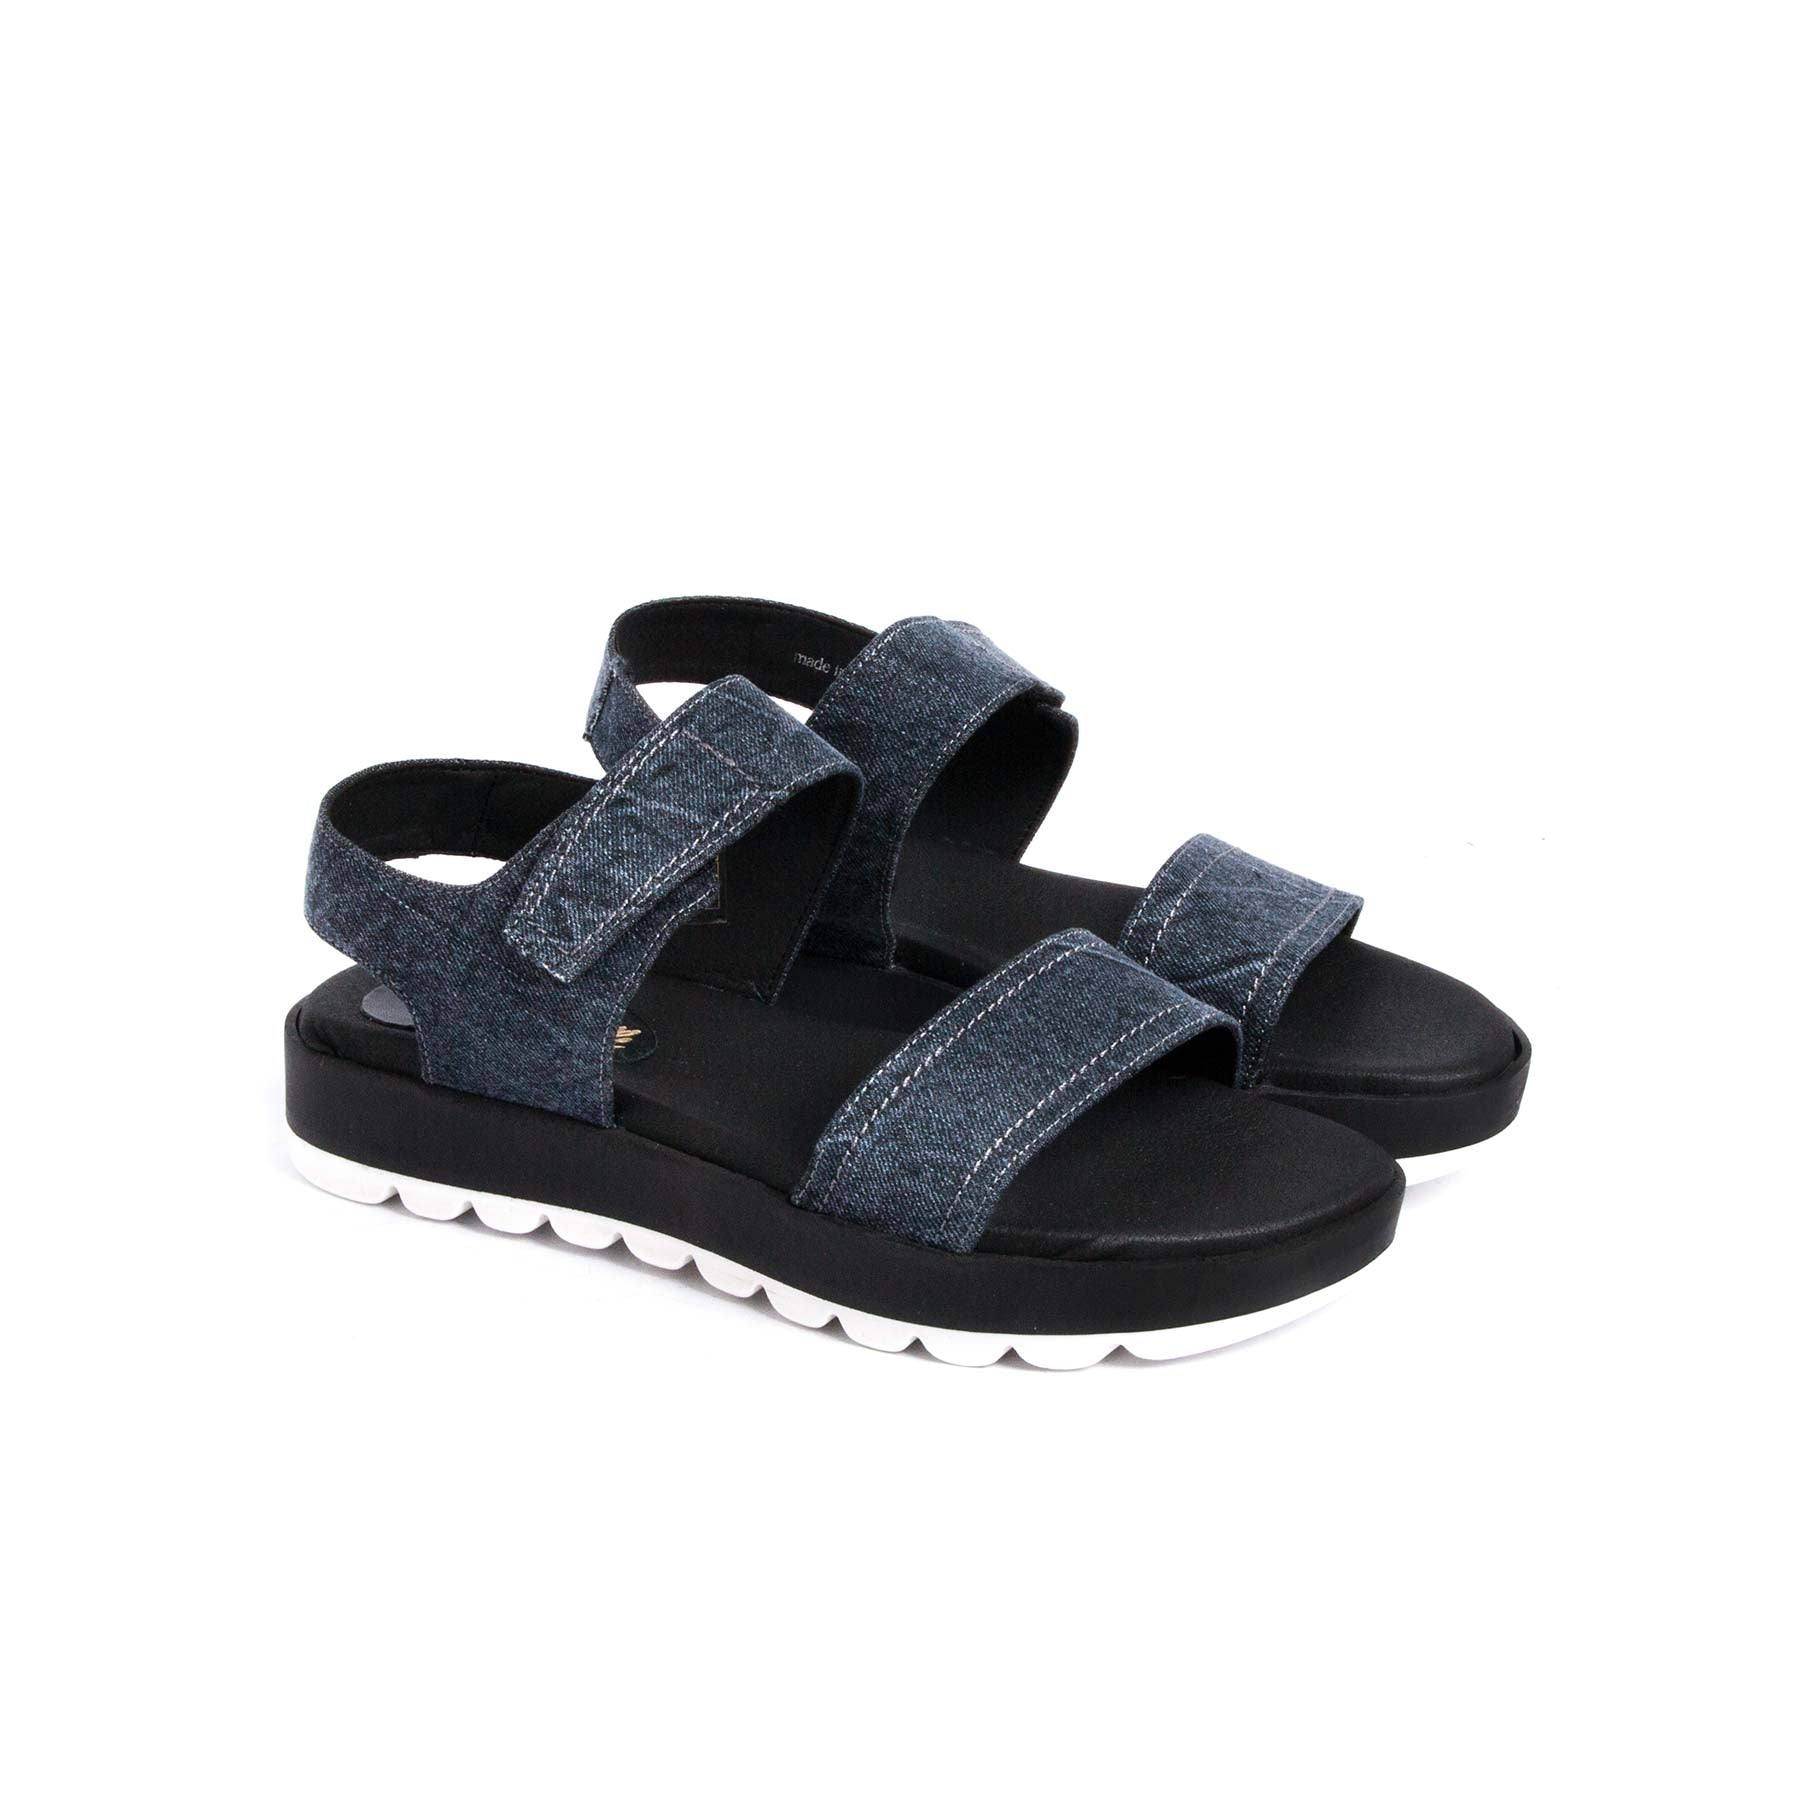 Sandals, Cuter Denim - Lintervalle shoes for woman